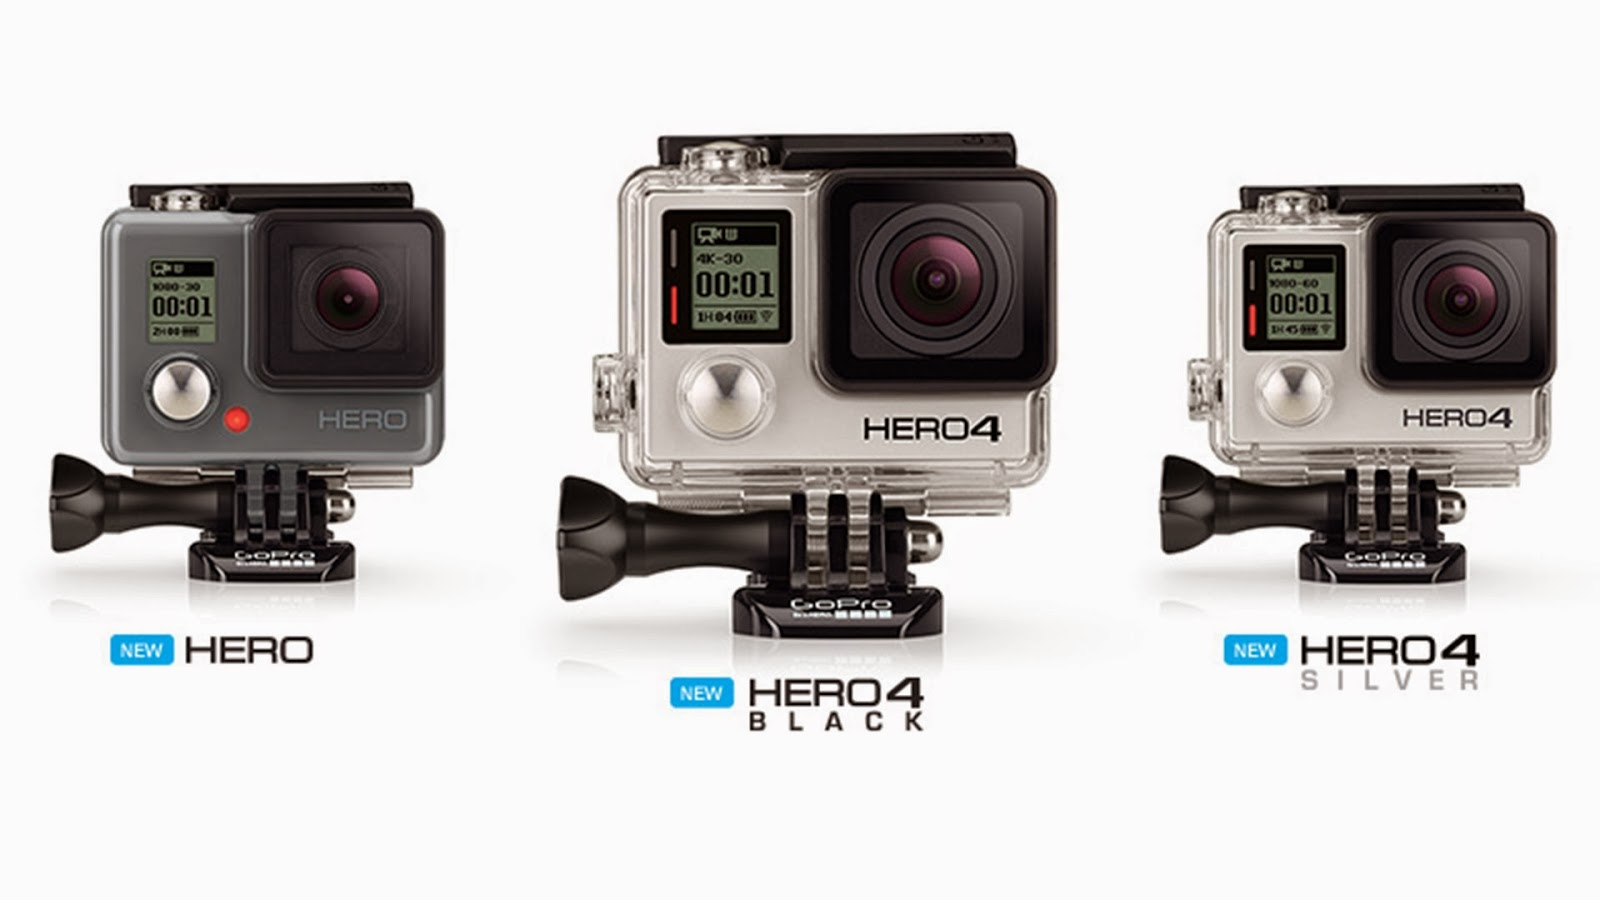 GoPro Hero 4 Series, GoPro Hero 4 Black, GoPro Hero 4 Silver, GoPro basic Hero camera